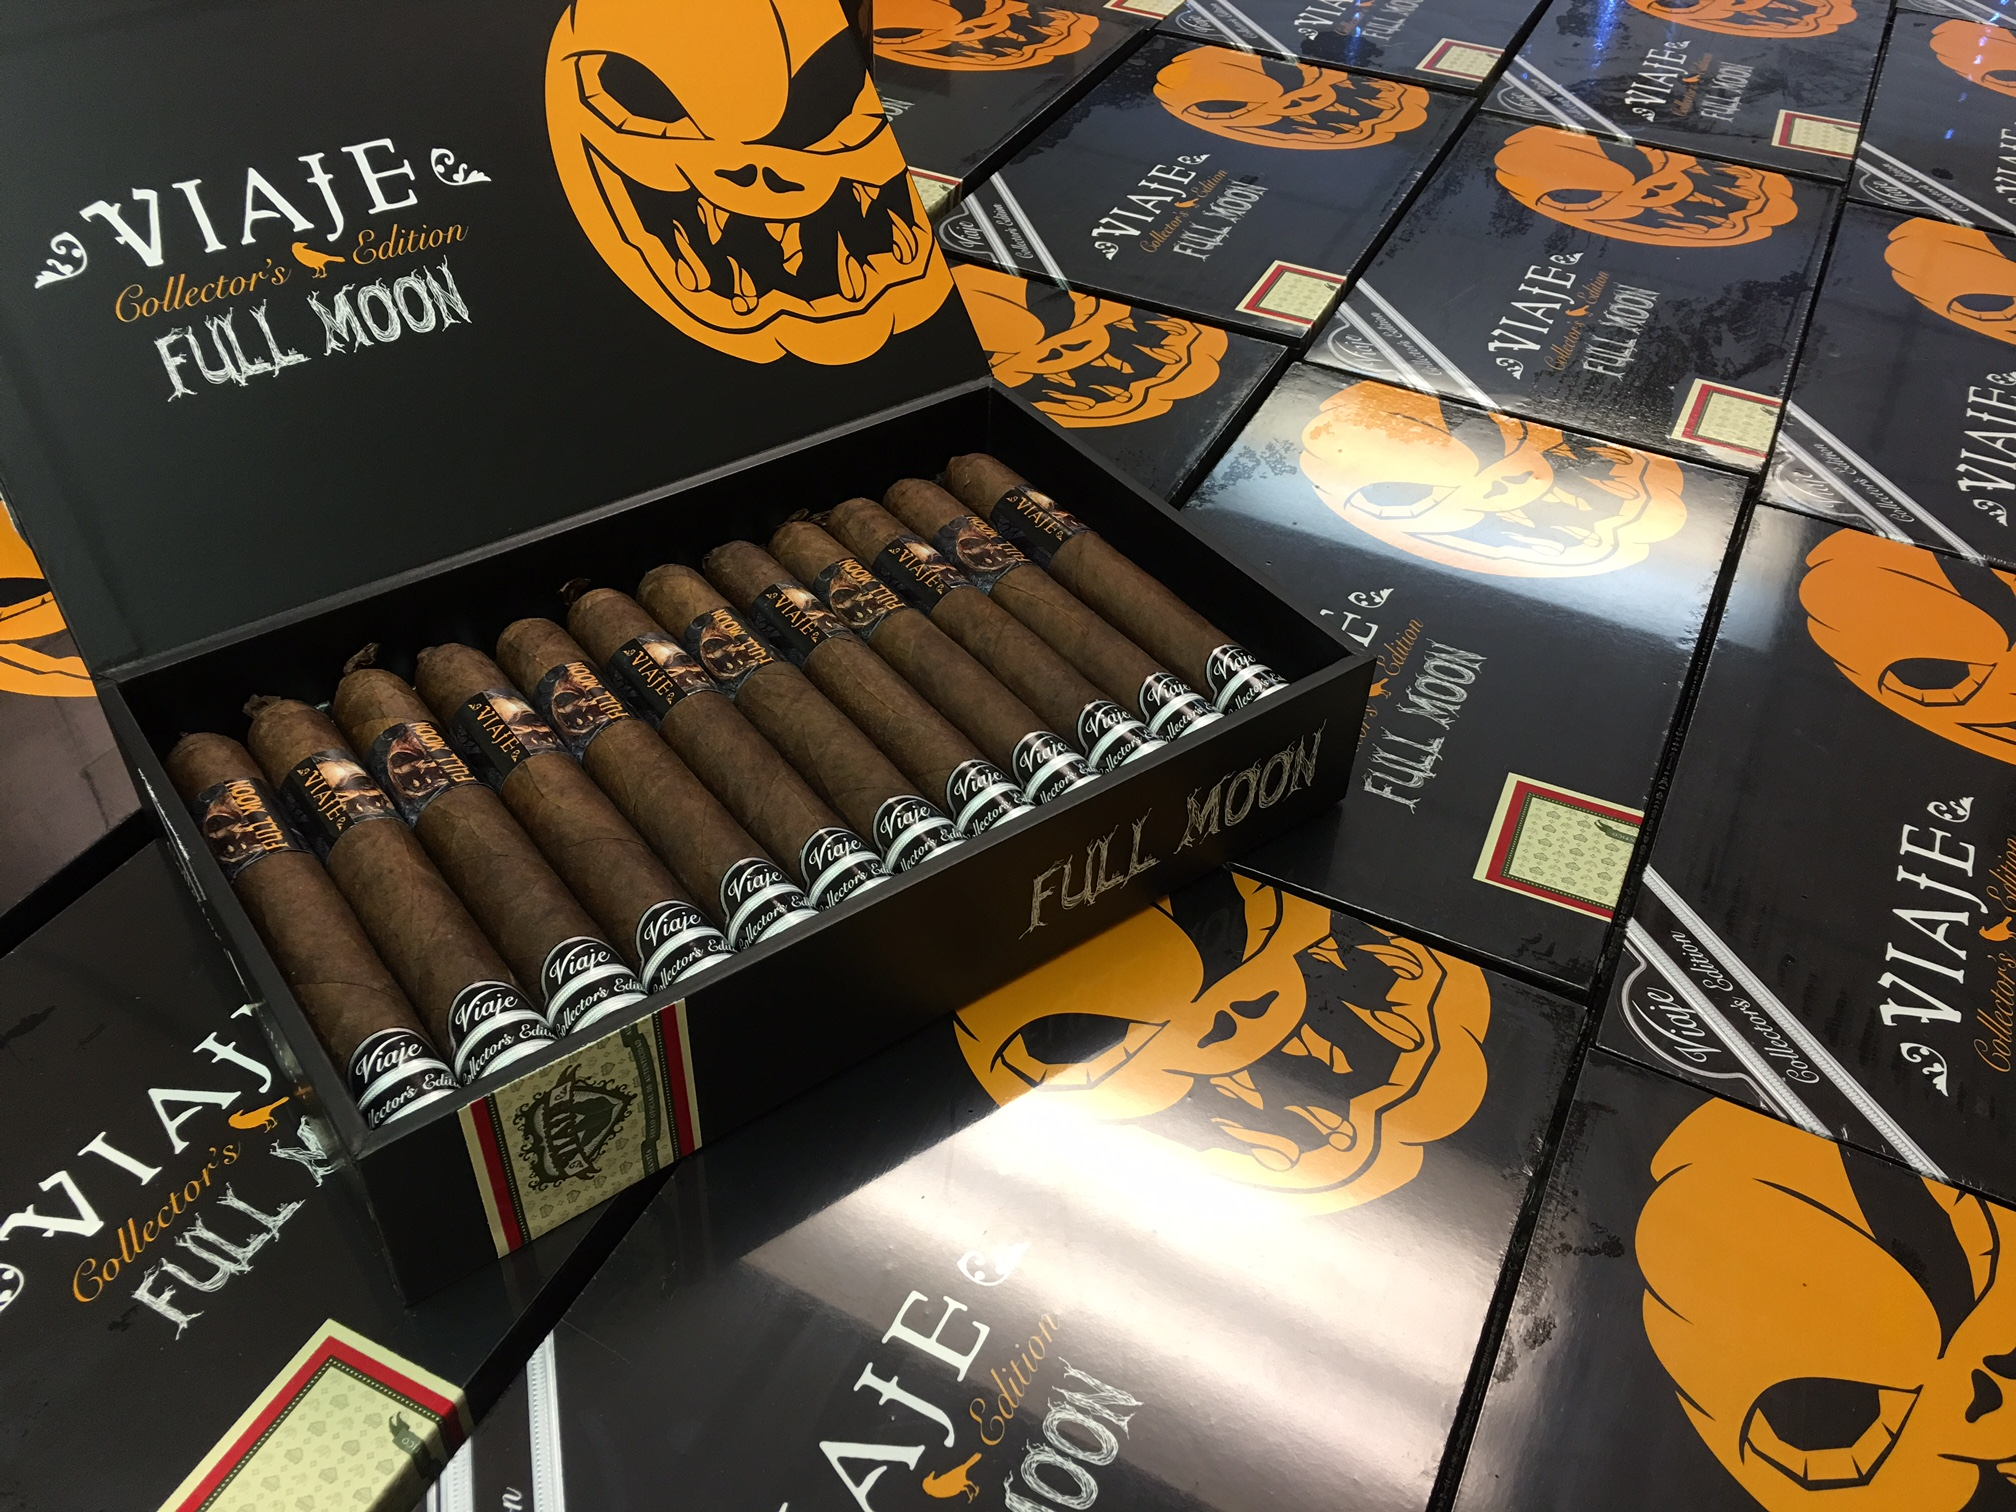 viaje_full_moon_collectors_edition_2016